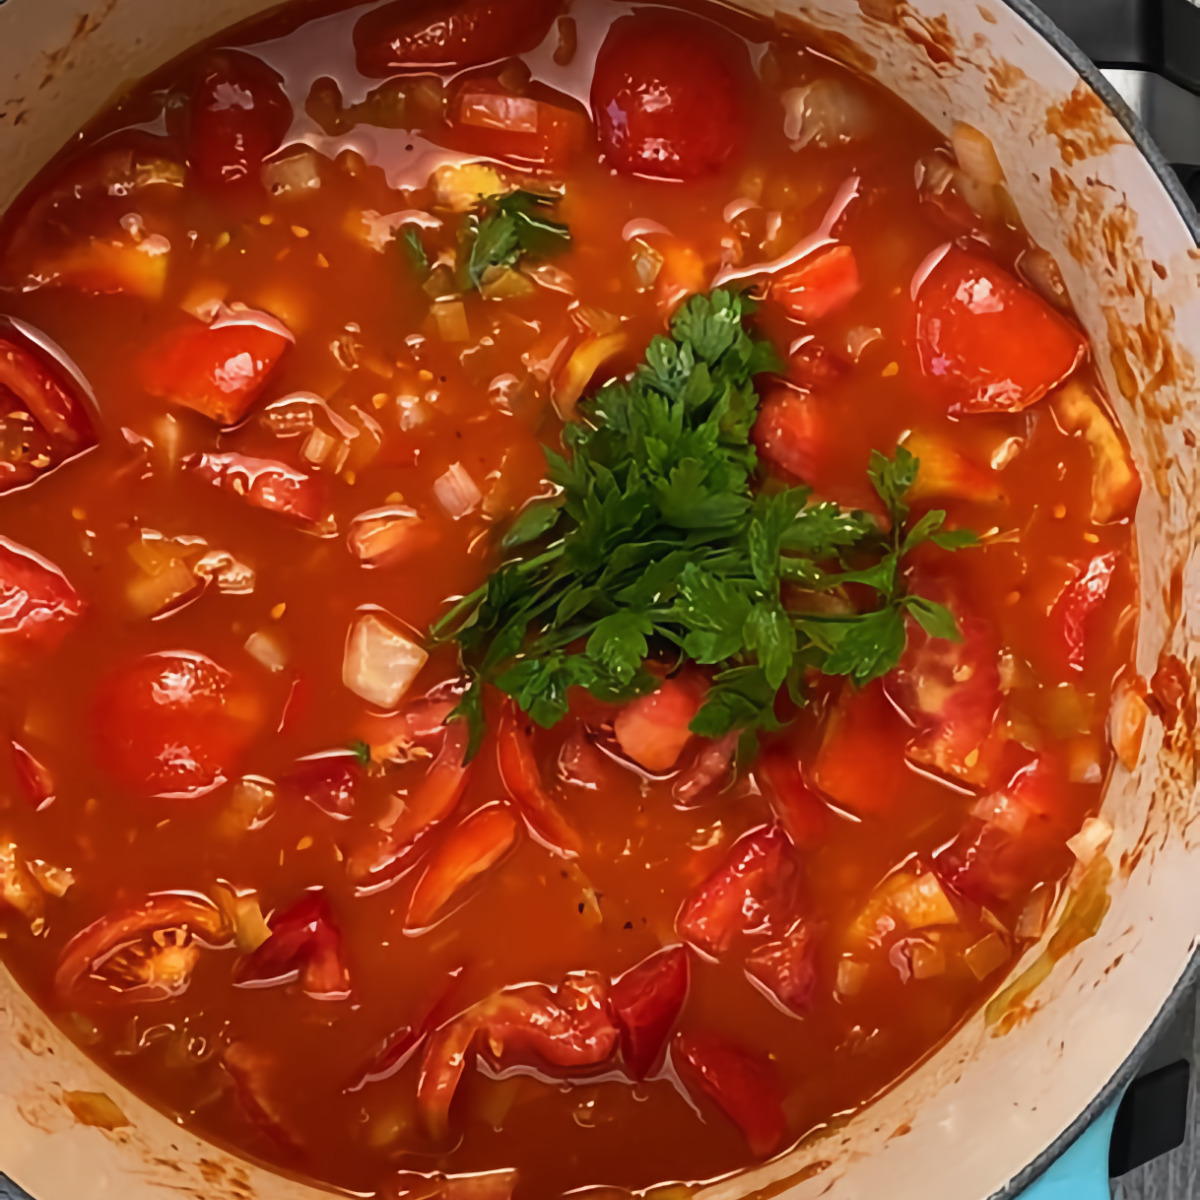 Top view of Fresh Tomato Soup simmering with a sprig of fresh parsley.